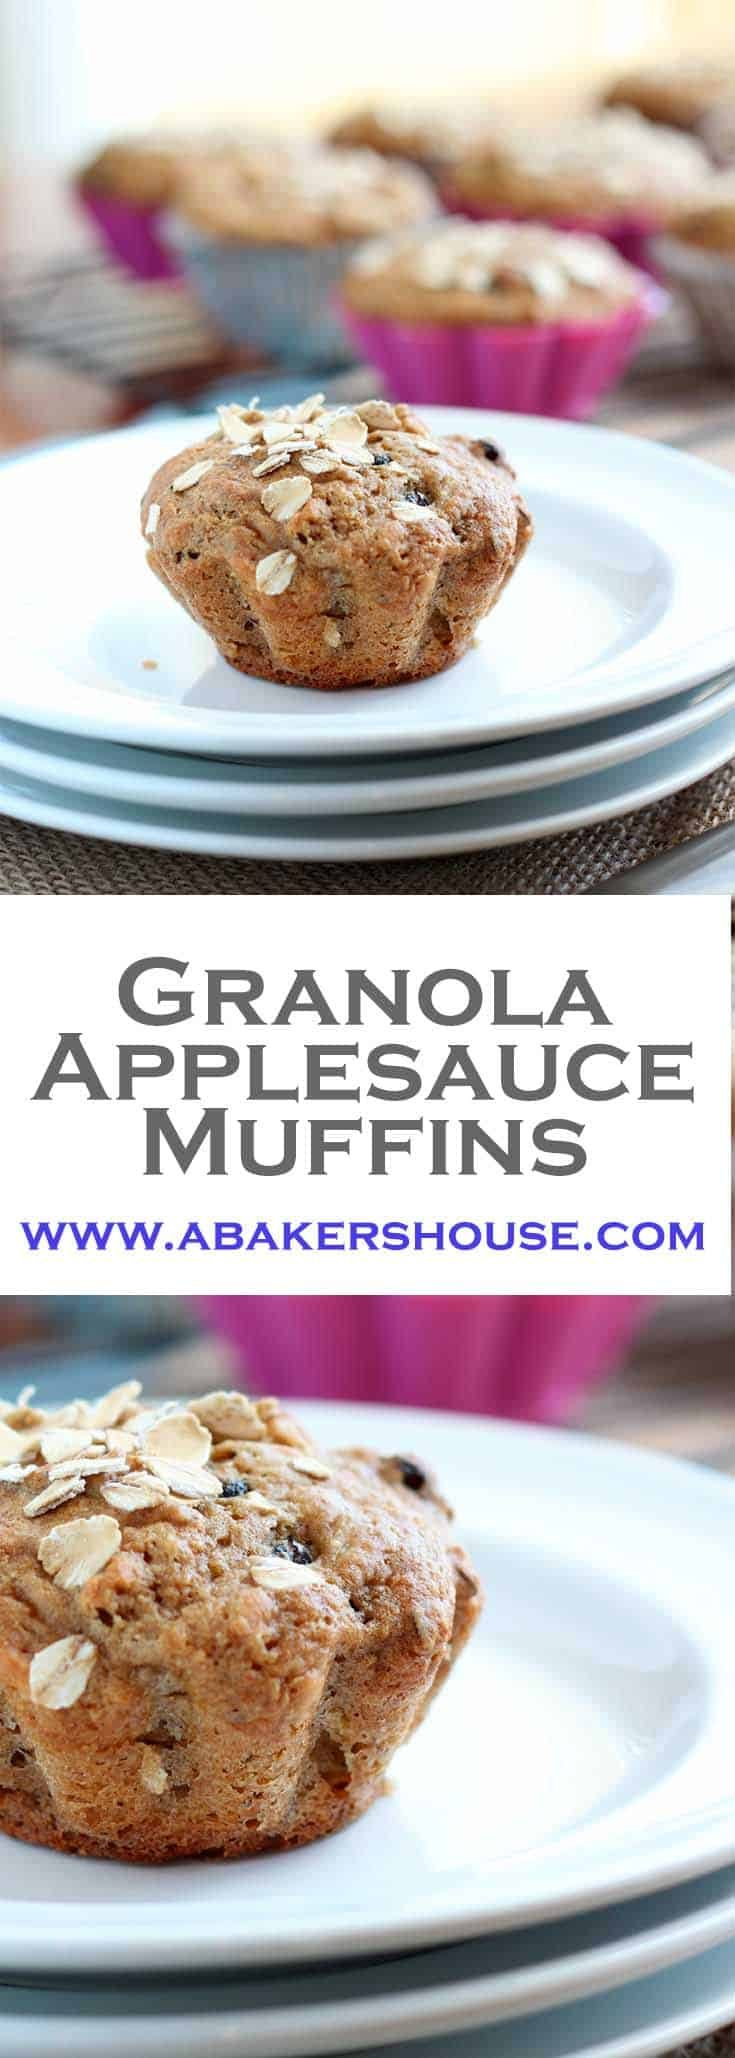 Granola applesauce muffins use applesauce instead of oil in this Whole Foods recipe. Taking small steps towards healthier choices starts with breakfast and you might as well start with a muffin! #abakershouse #muffins #applesauce #healthymuffin